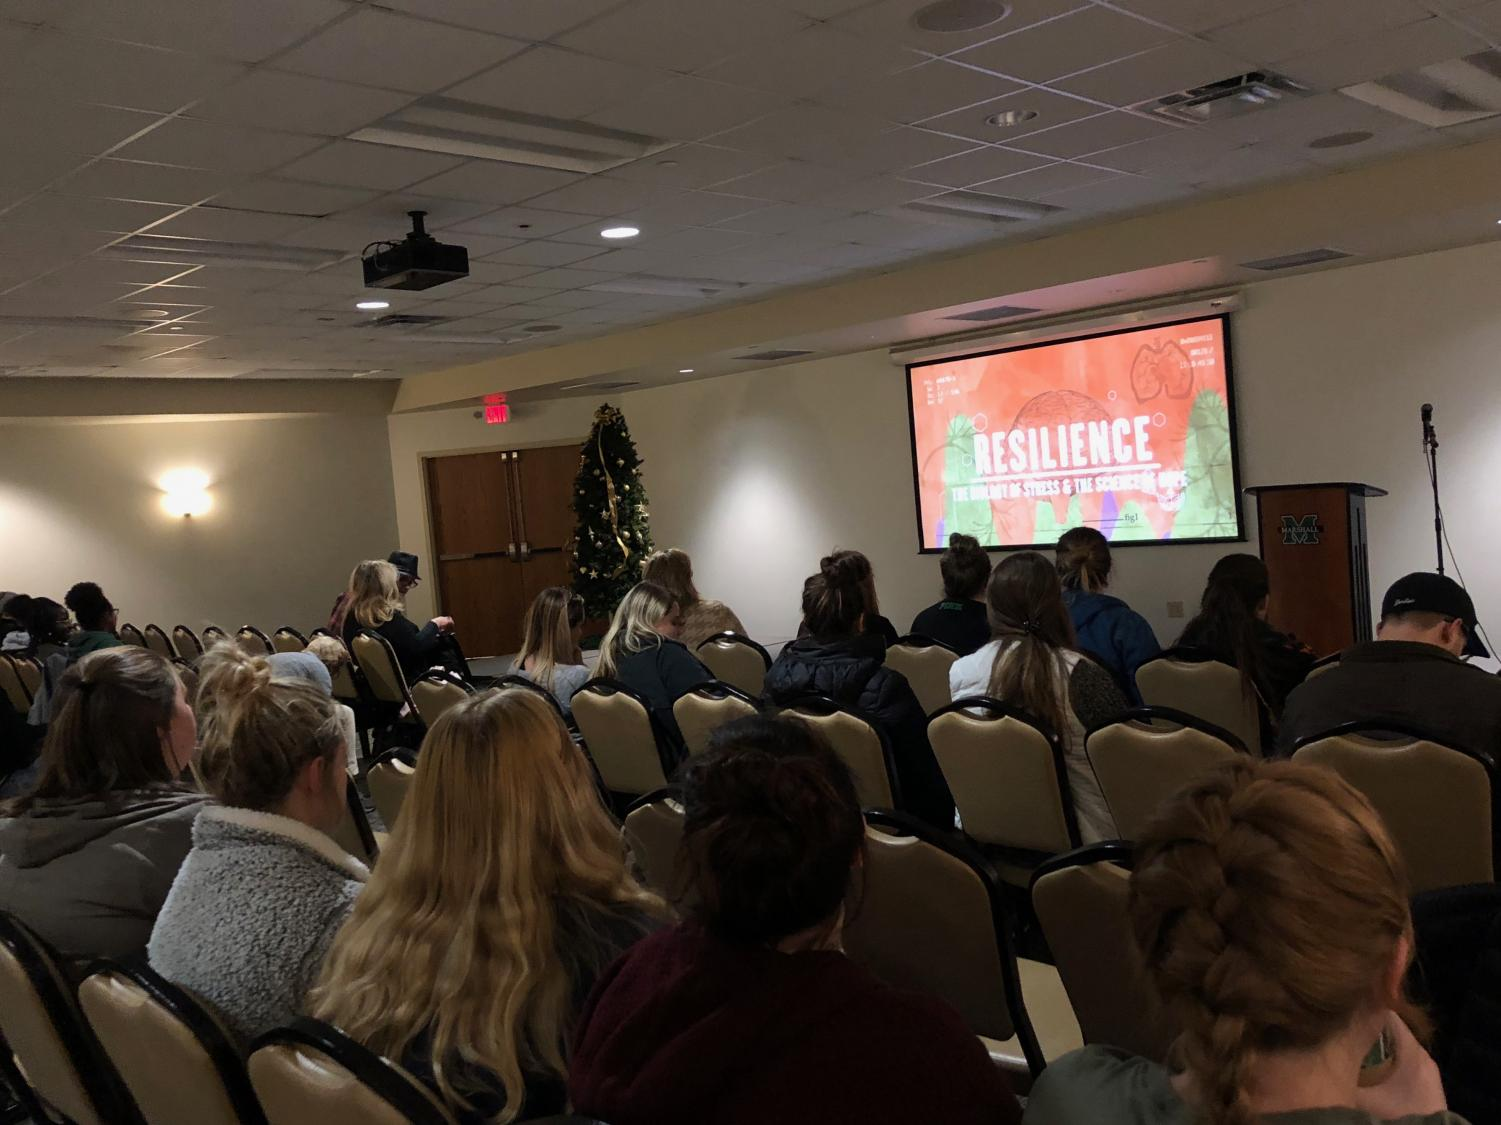 Marshall University students and local community members and social workers watched the documentary Resilience and discussed the causes and impacts of toxic stress and adverse childhood experiences, Tuesday, in the Memorial Student Center.